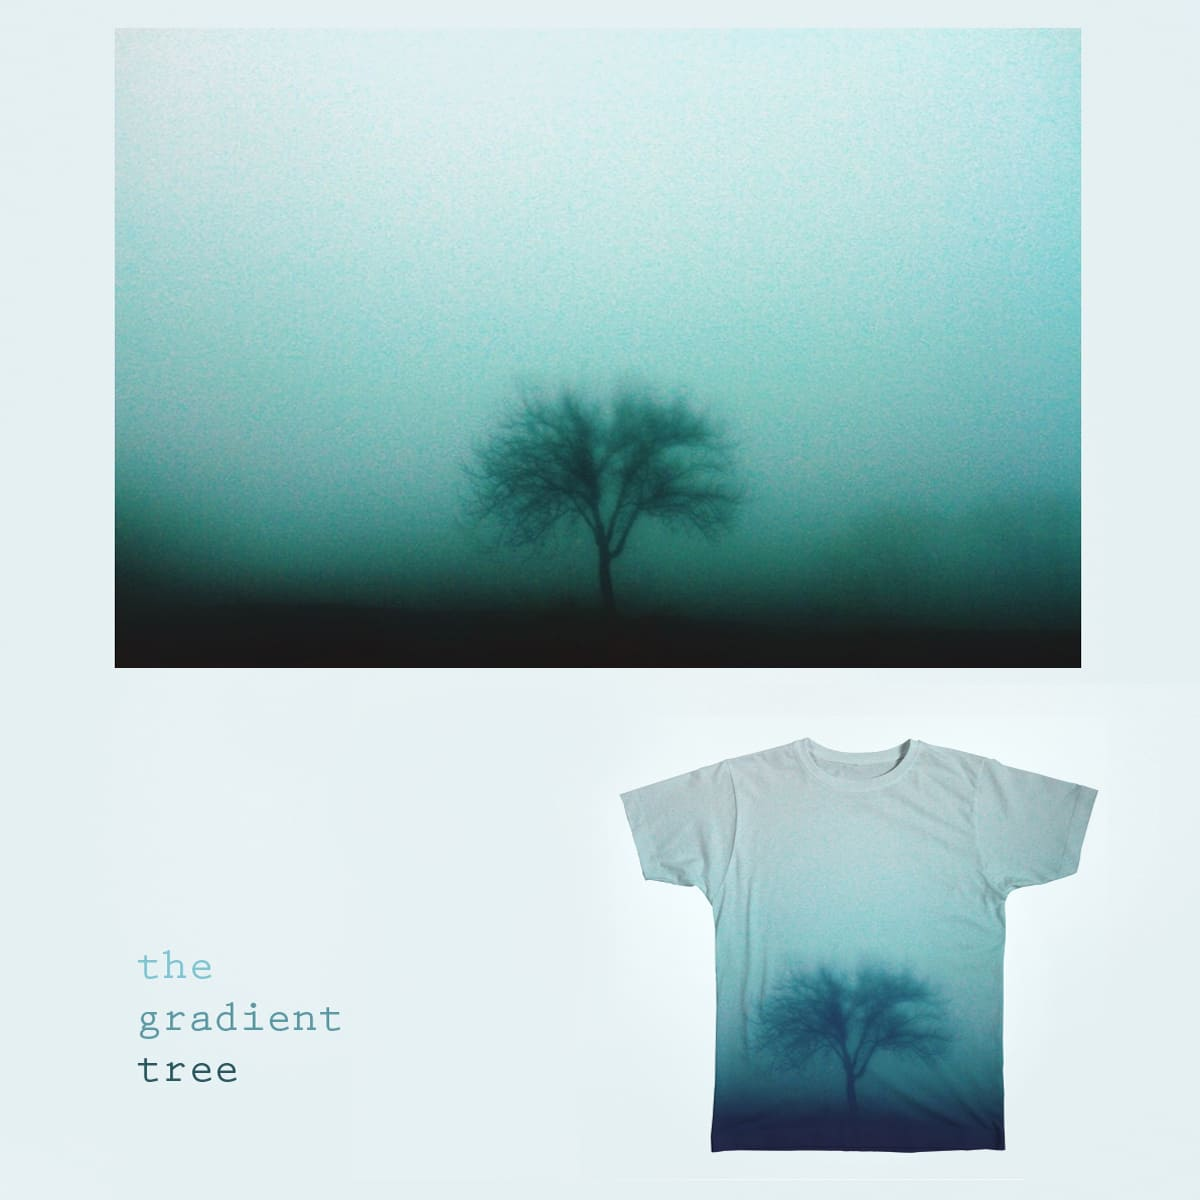 The gradient tree by feliciasimion_1 on Threadless